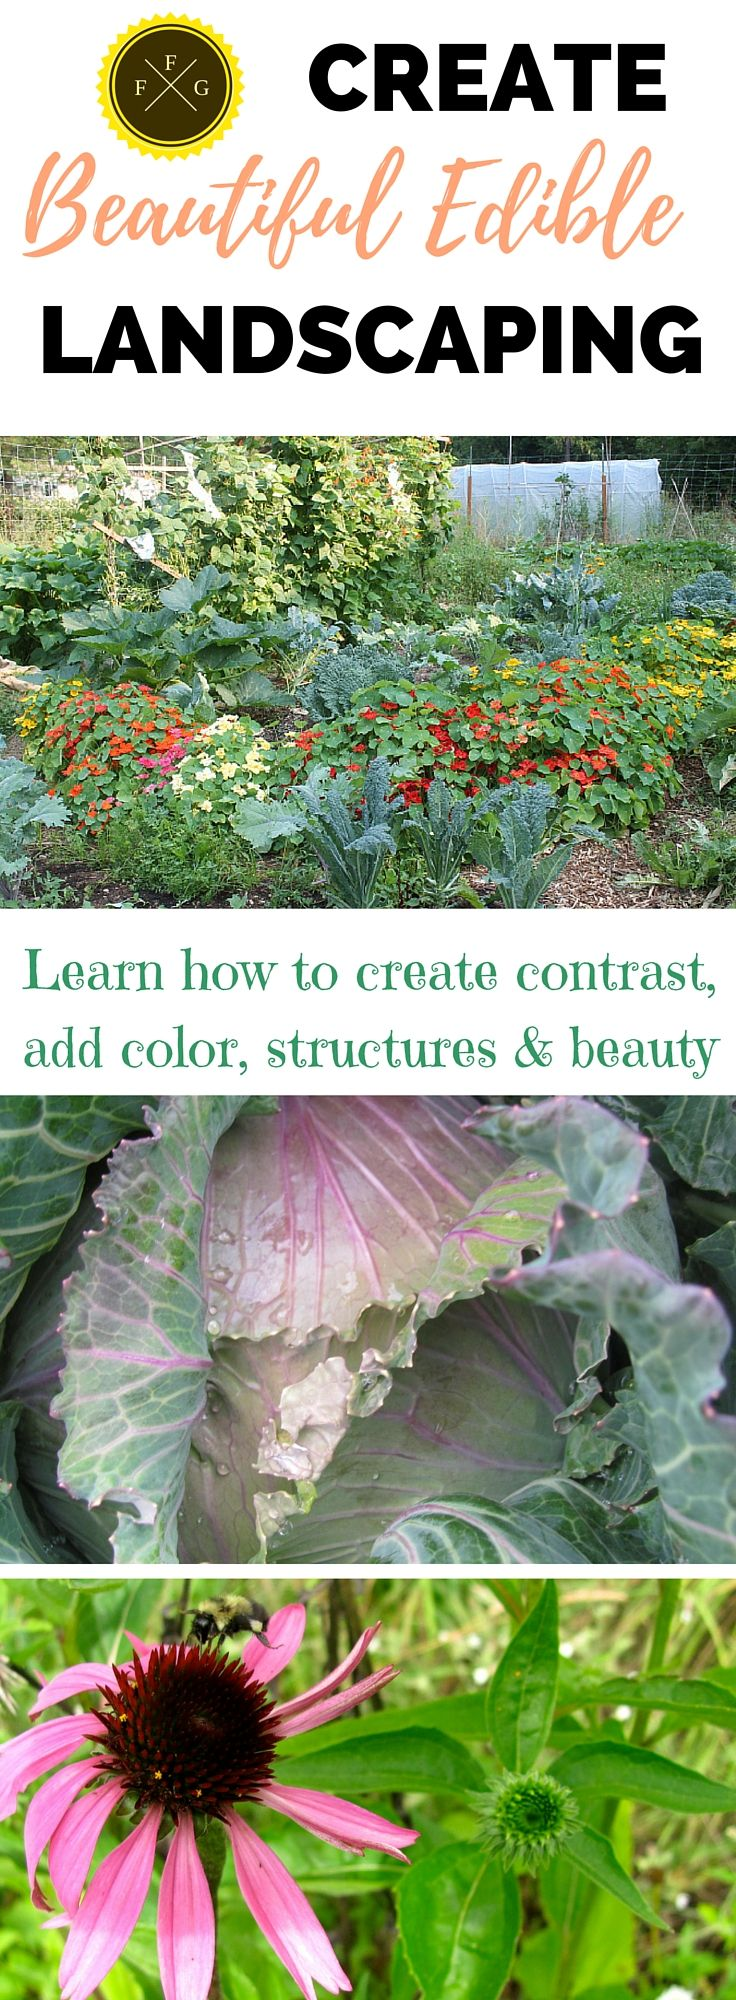 How To Create Beautiful Edible Landscaping Gardens 400 x 300